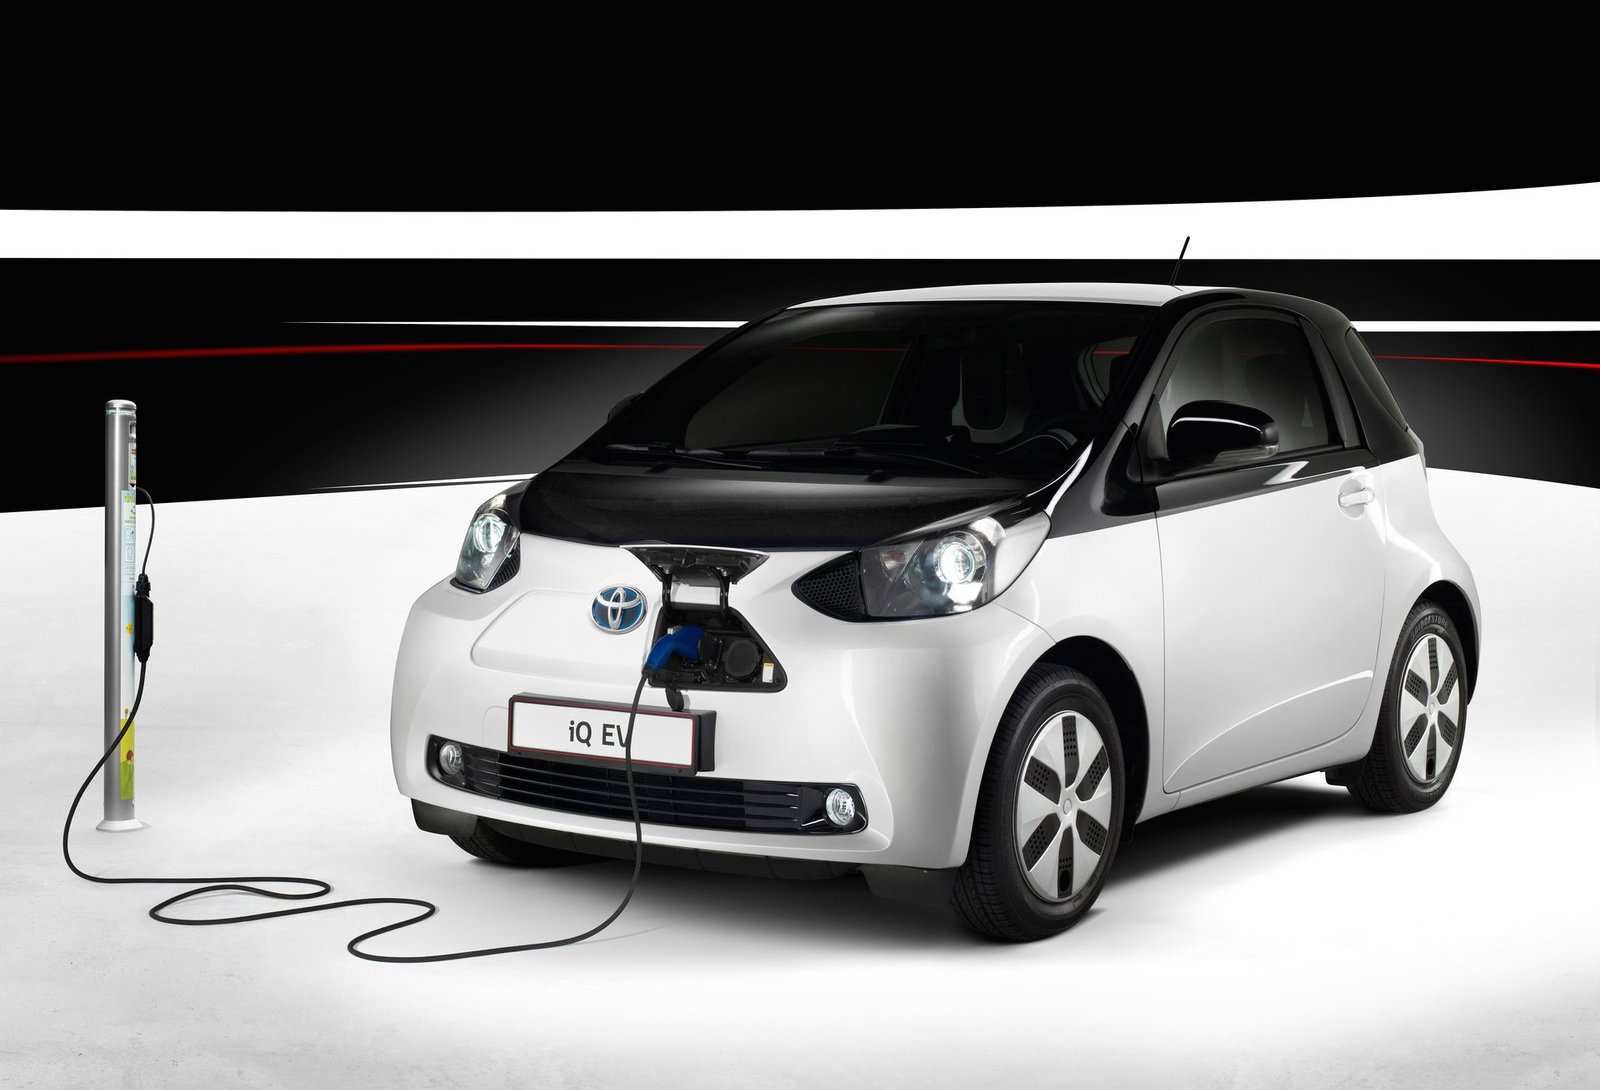 70 Best Review Toyota Iq 2020 New Concept for Toyota Iq 2020